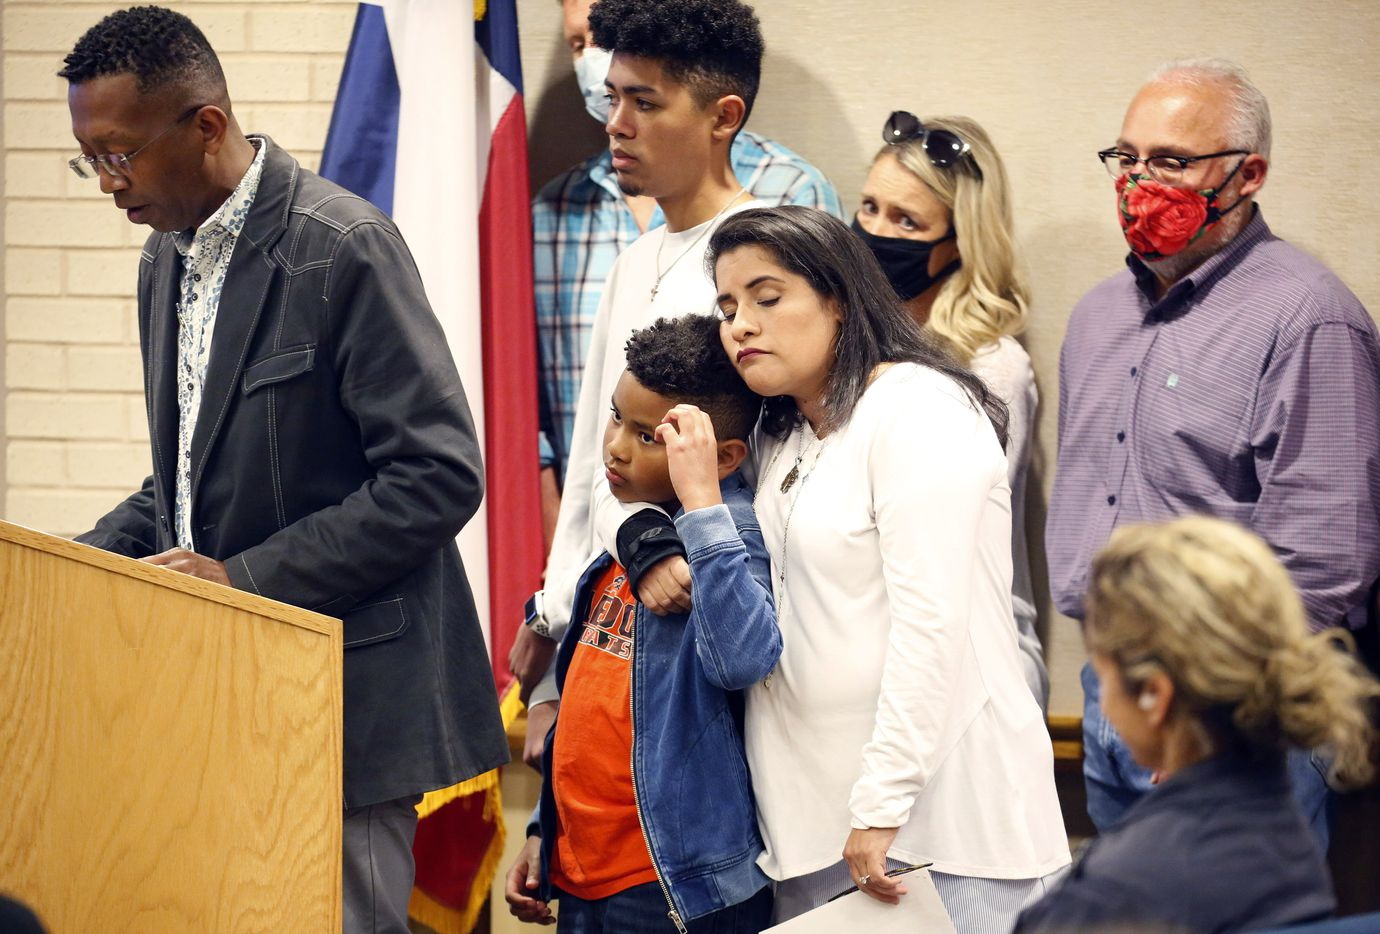 Parent Maria Turner hugs one of her two boys after telling the Aledo ISD school board about what happened after moving to Aledo, Monday, April 19, 2021. The boys were playing a friendly game of 'cops and robbers' when it became physical. An alternation in which another boy told his friend to kneel on her son's neck after being tackled to the concrete. Her husband, Raymond Turner (left), also spoke. (Tom Fox/The Dallas Morning News)